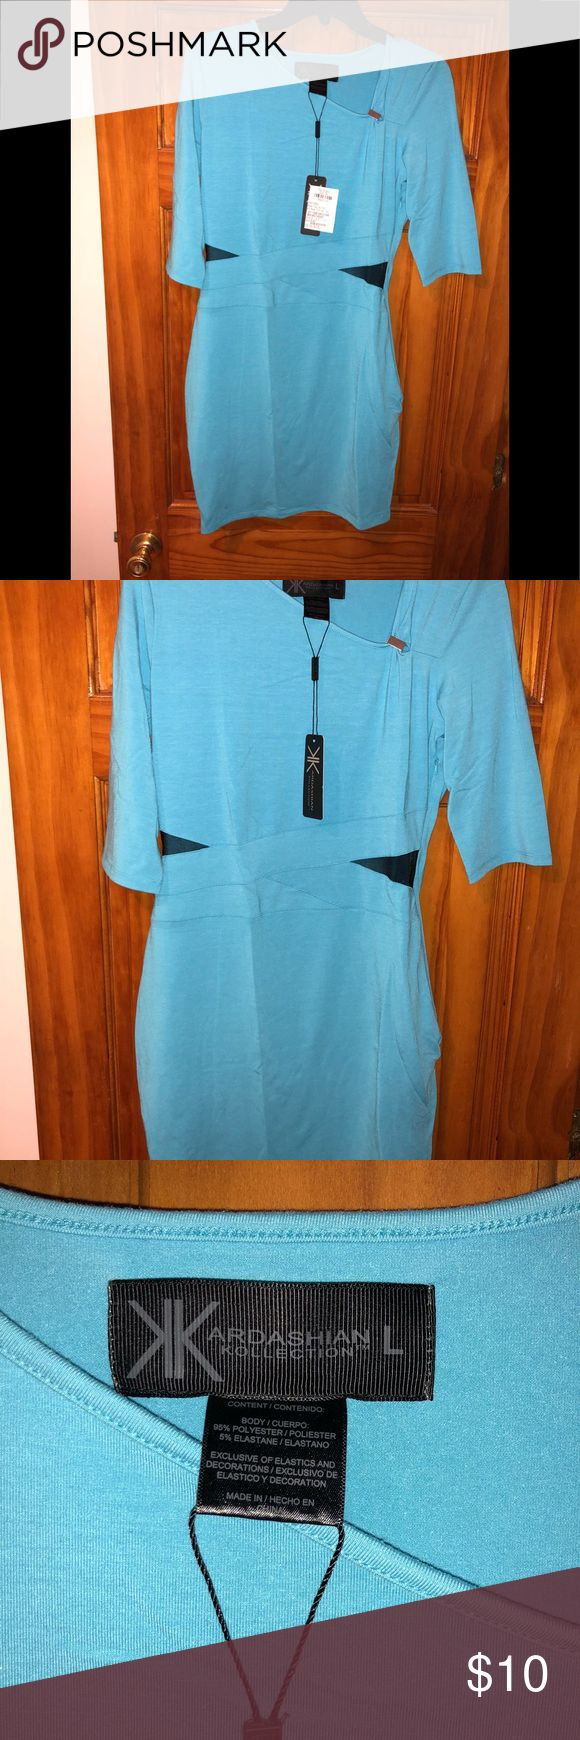 Kardashian Kollection - brand new dress with tags Brand new with tags - never been worn. Turquoise with mesh inserts in black. Body con dress with sleeves Kardashian Kollection Dresses